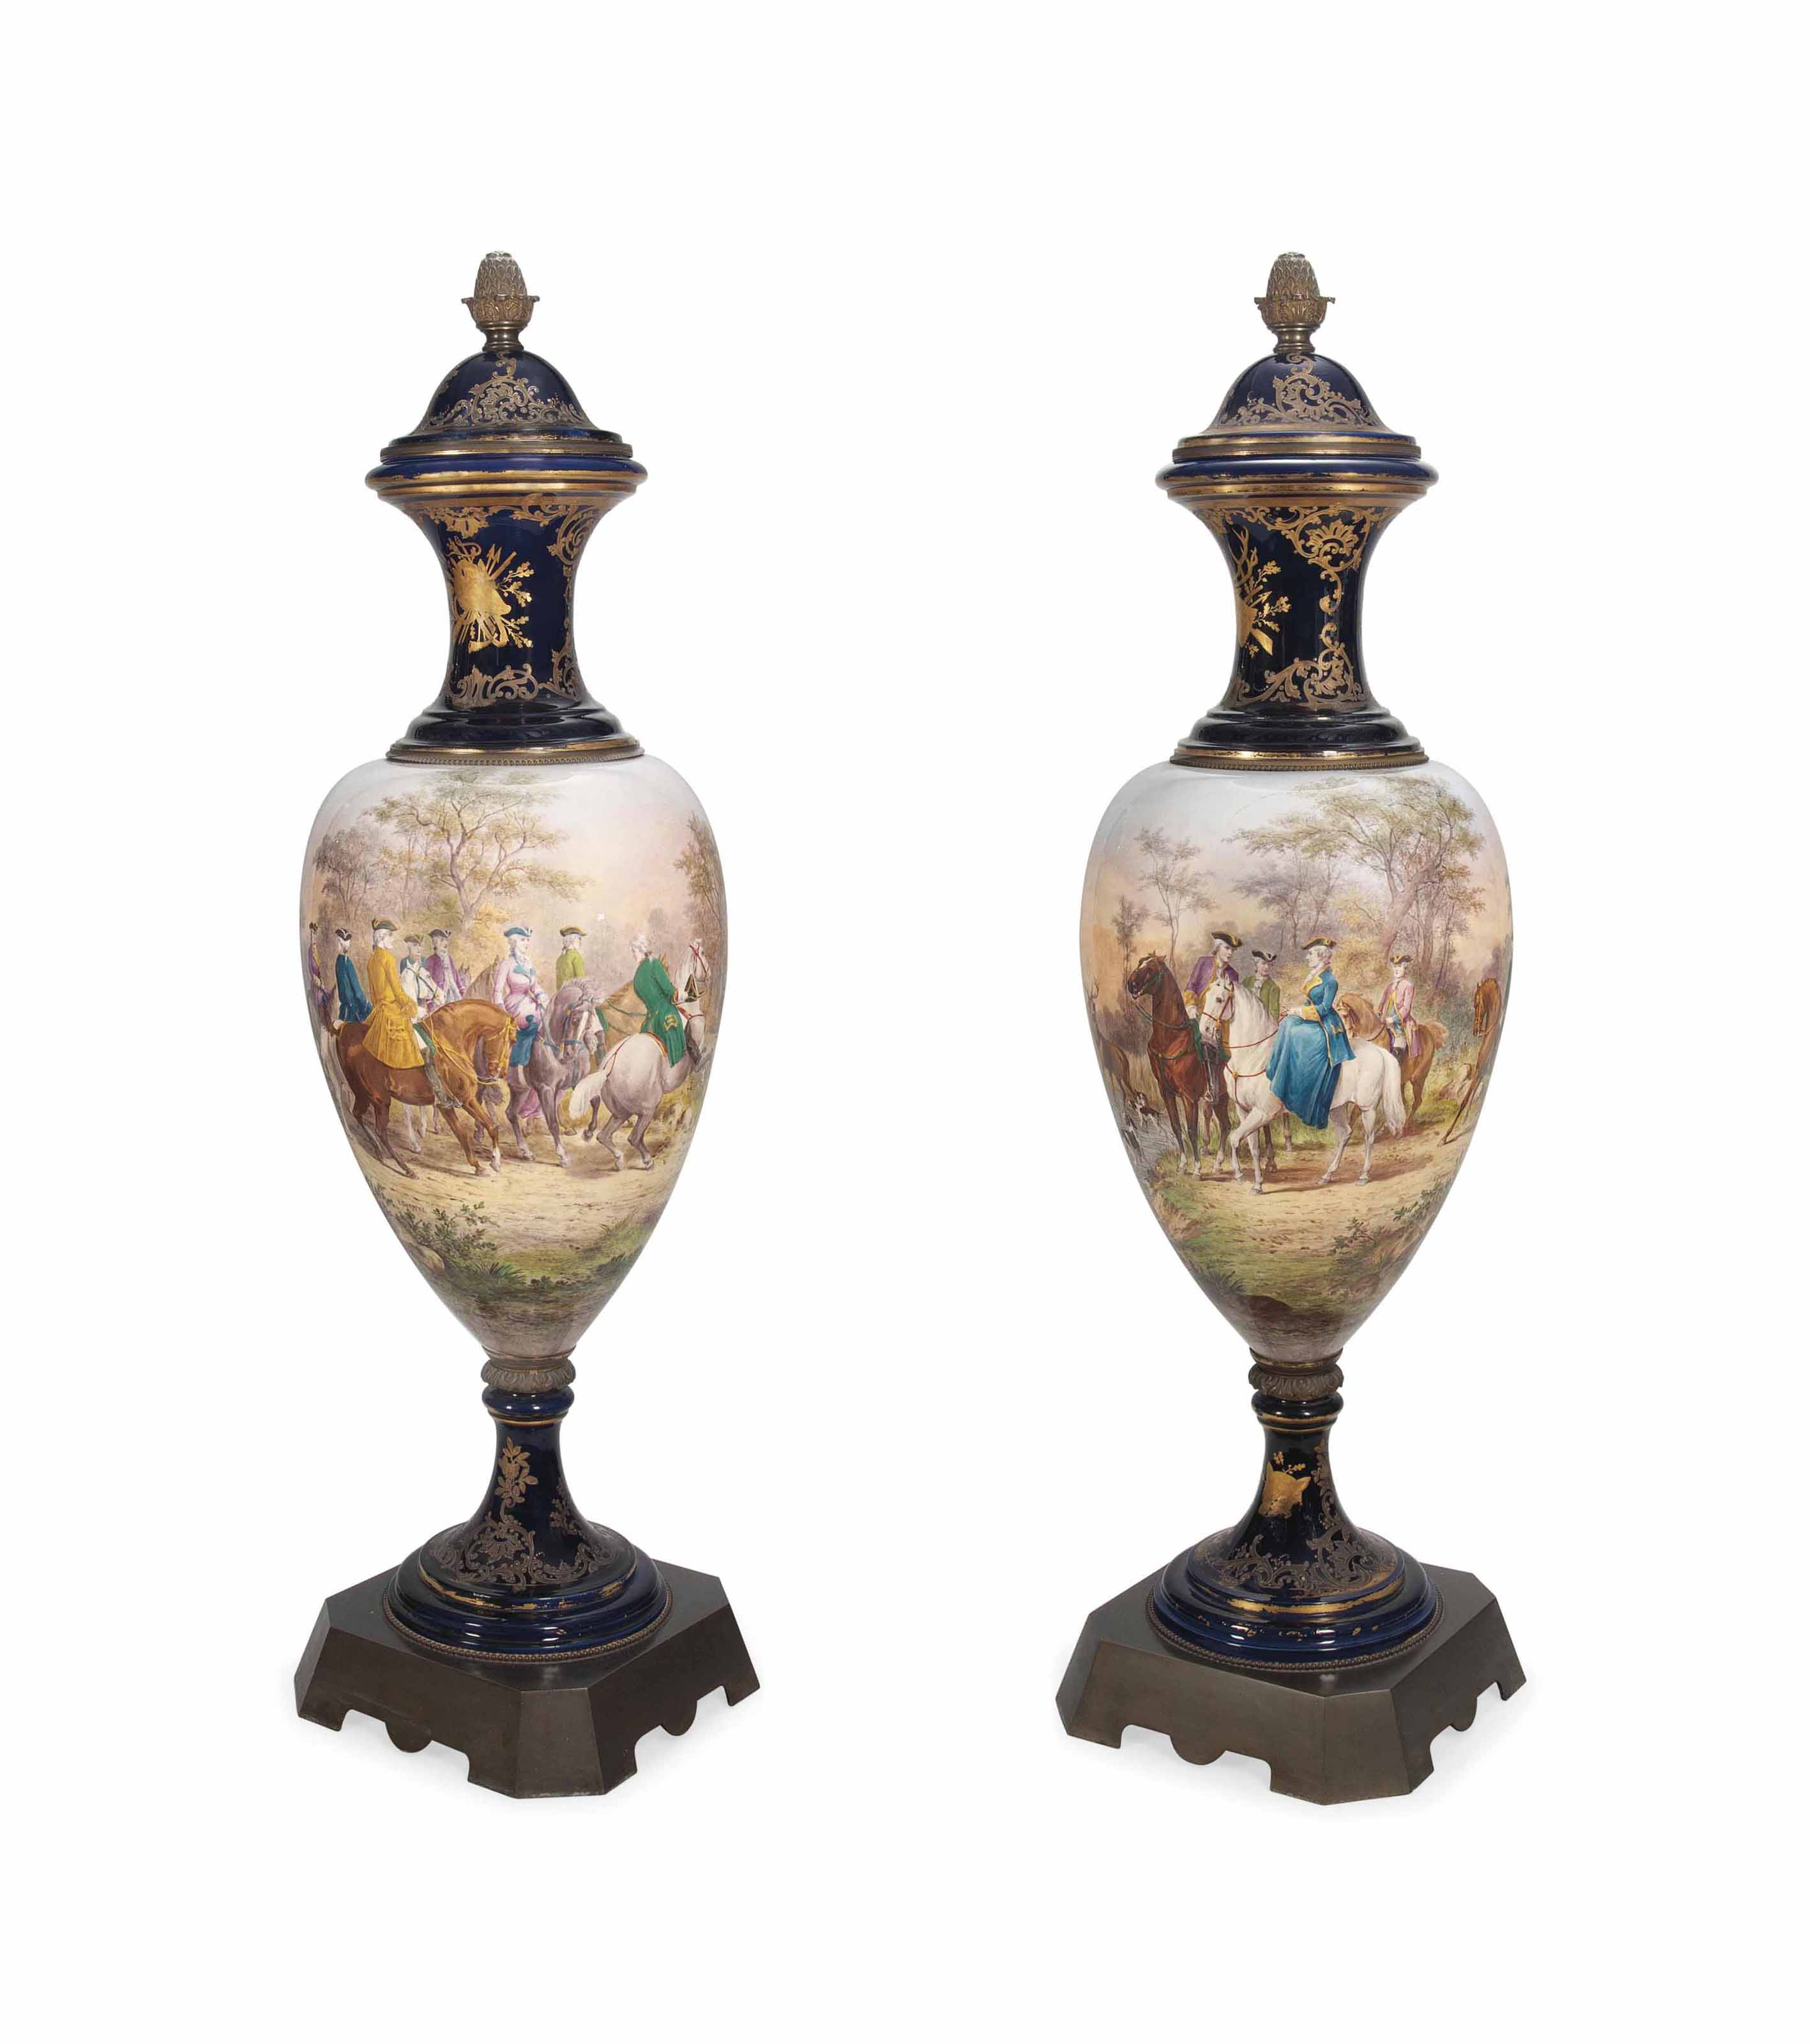 A LARGE PAIR OF SEVRES-STYLE M